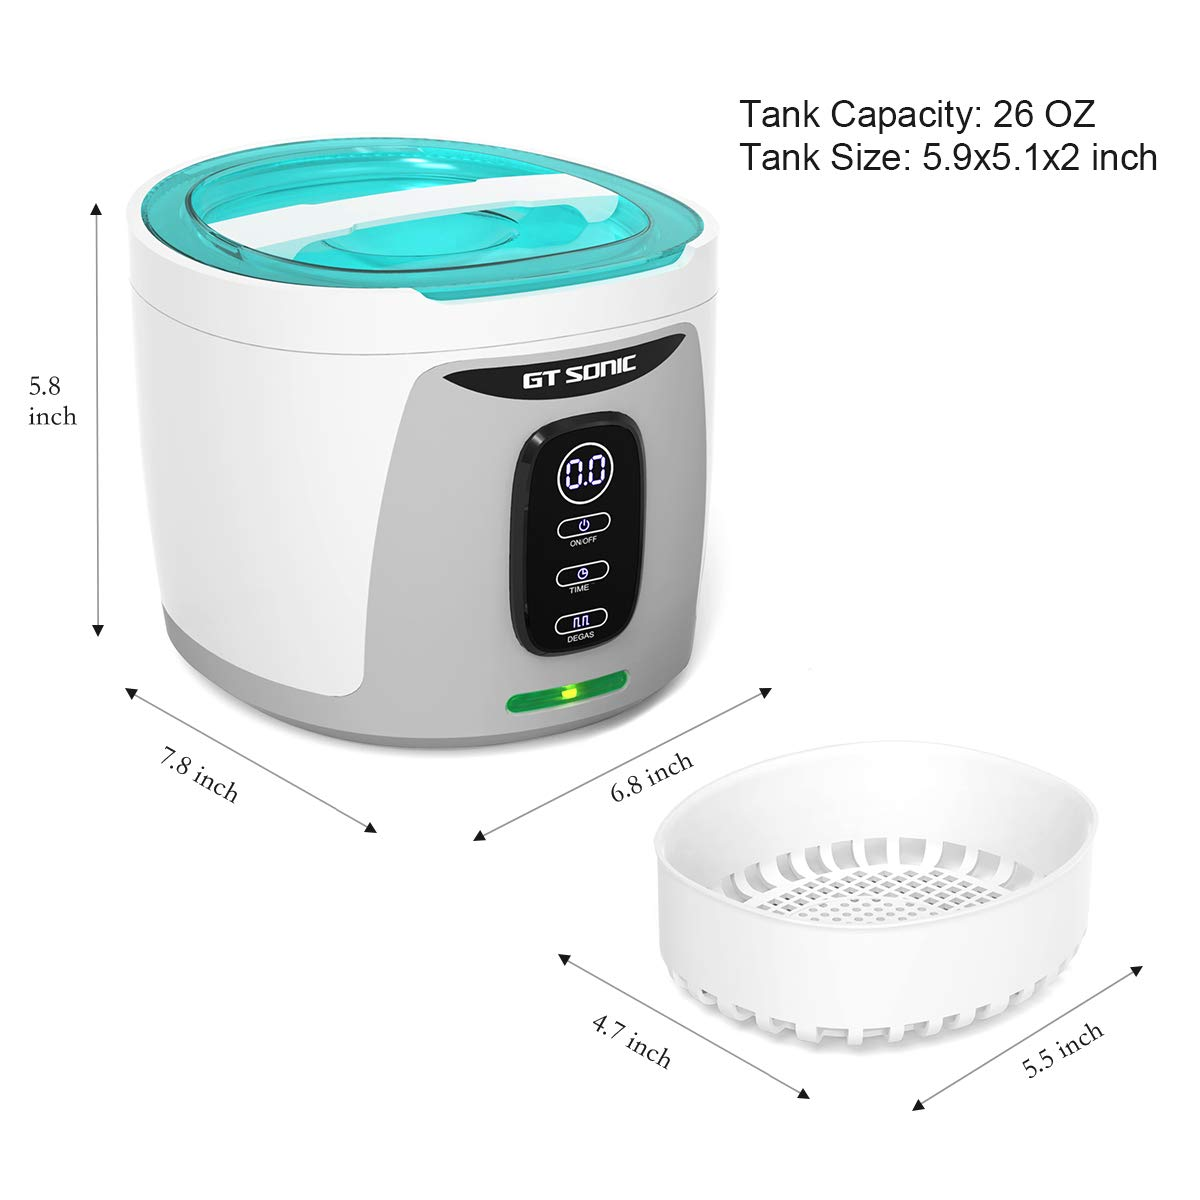 GTSONIC Ultrasonic Cleaner Jewelry Glasses Dentures Professional Detachable Cleaning Machine, 4 Timer Cycles Auto-Off, 26 OZ, 35 W by GTSONIC (Image #3)